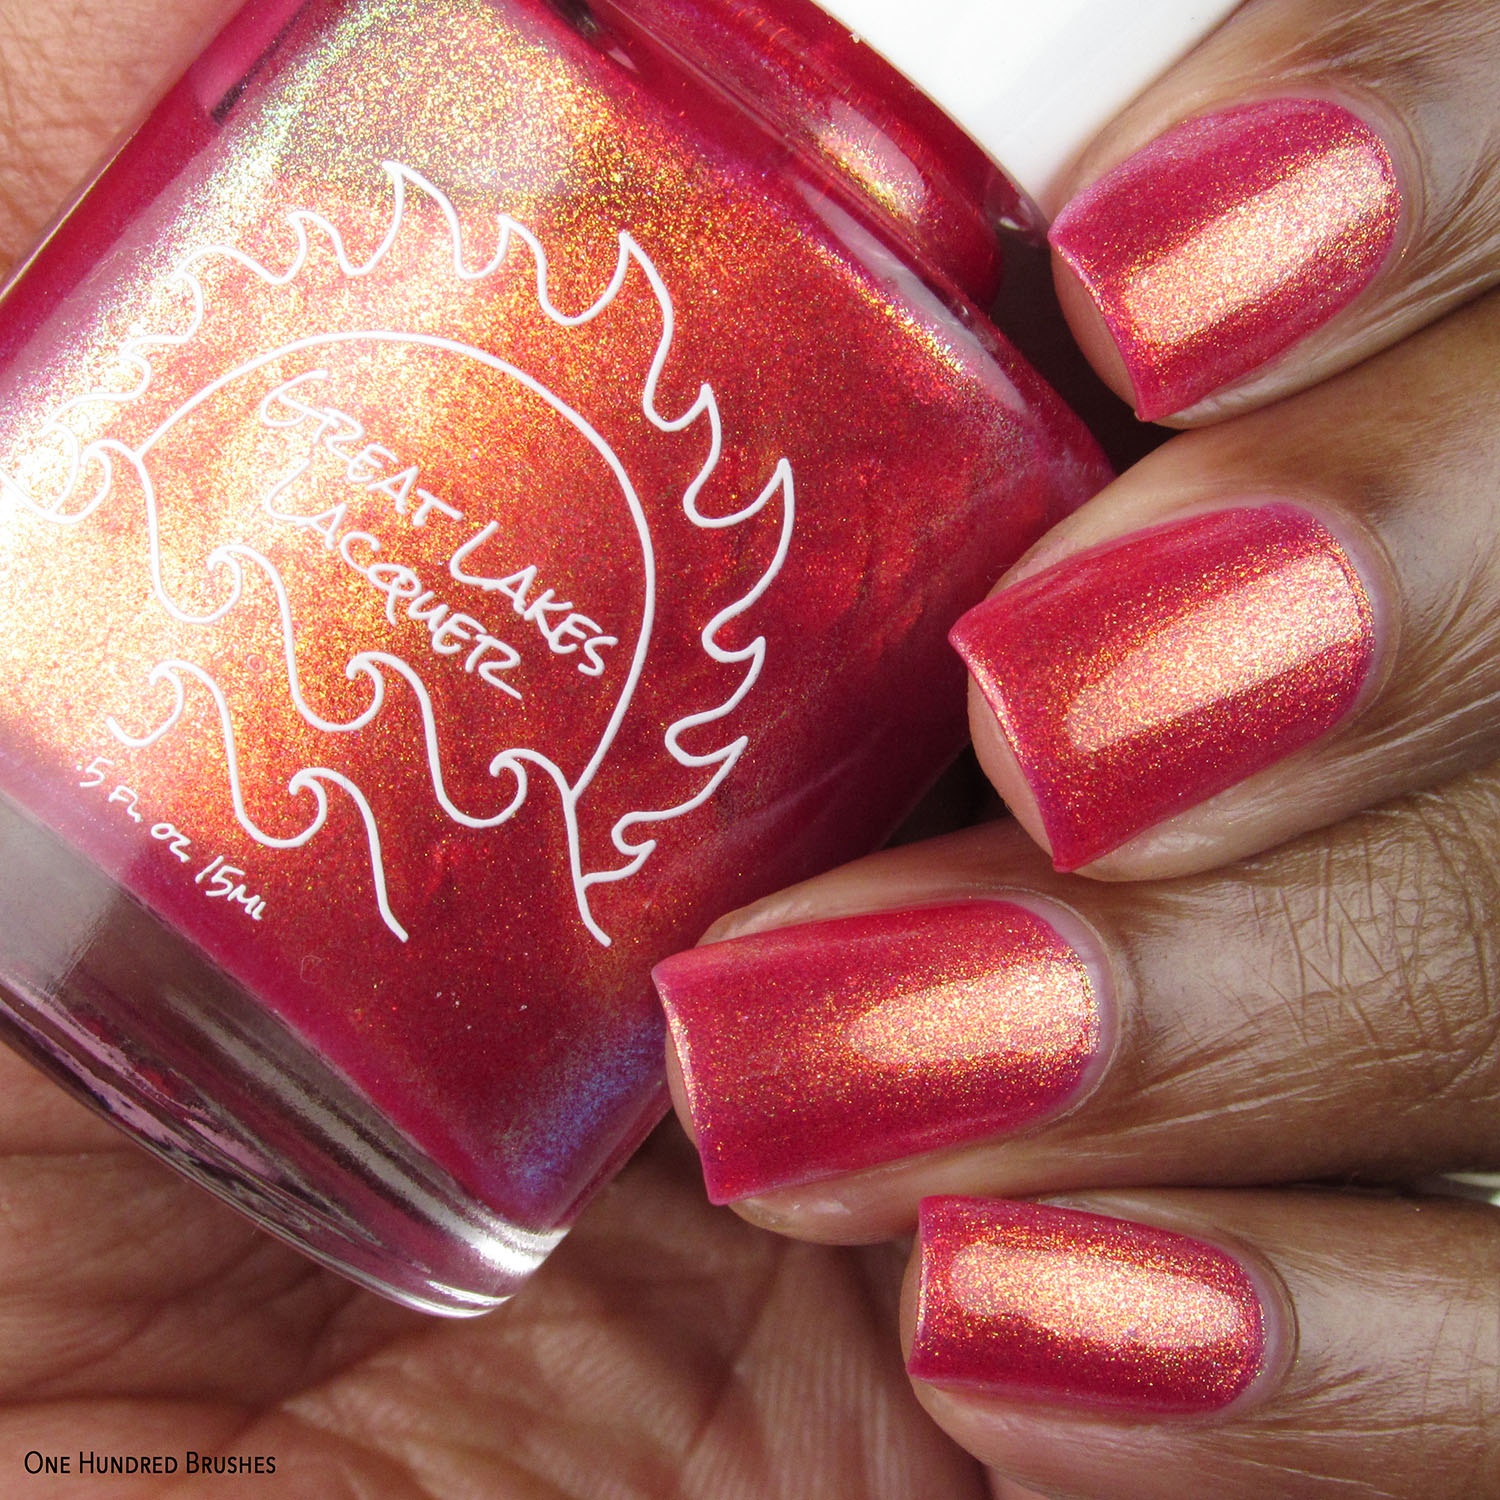 The Dragon of the West - Great Lakes Lacquer - HHC April 2020